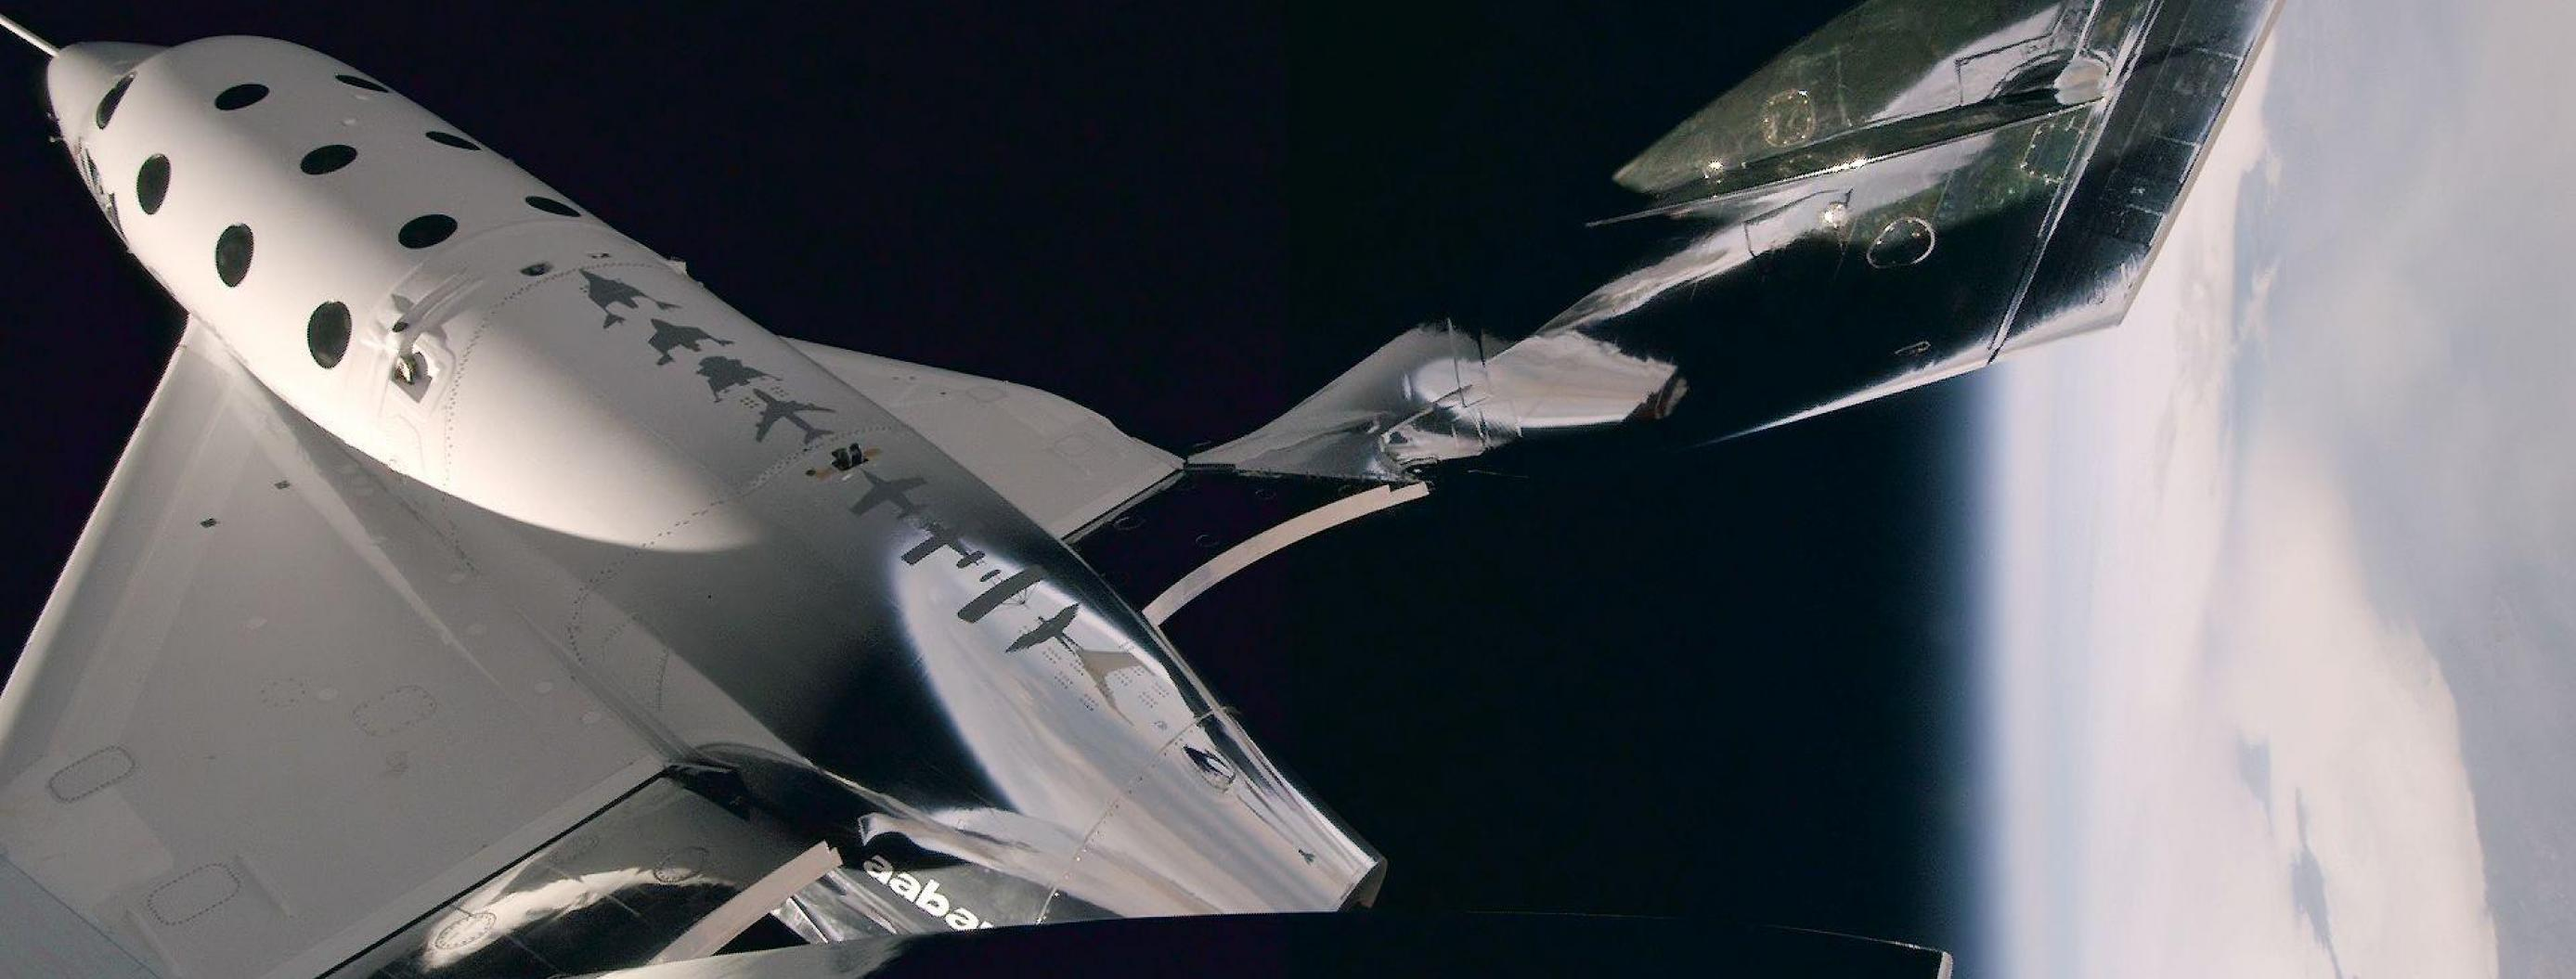 Virgin Galactic Plane Reached New Heights in Historic Test Flight